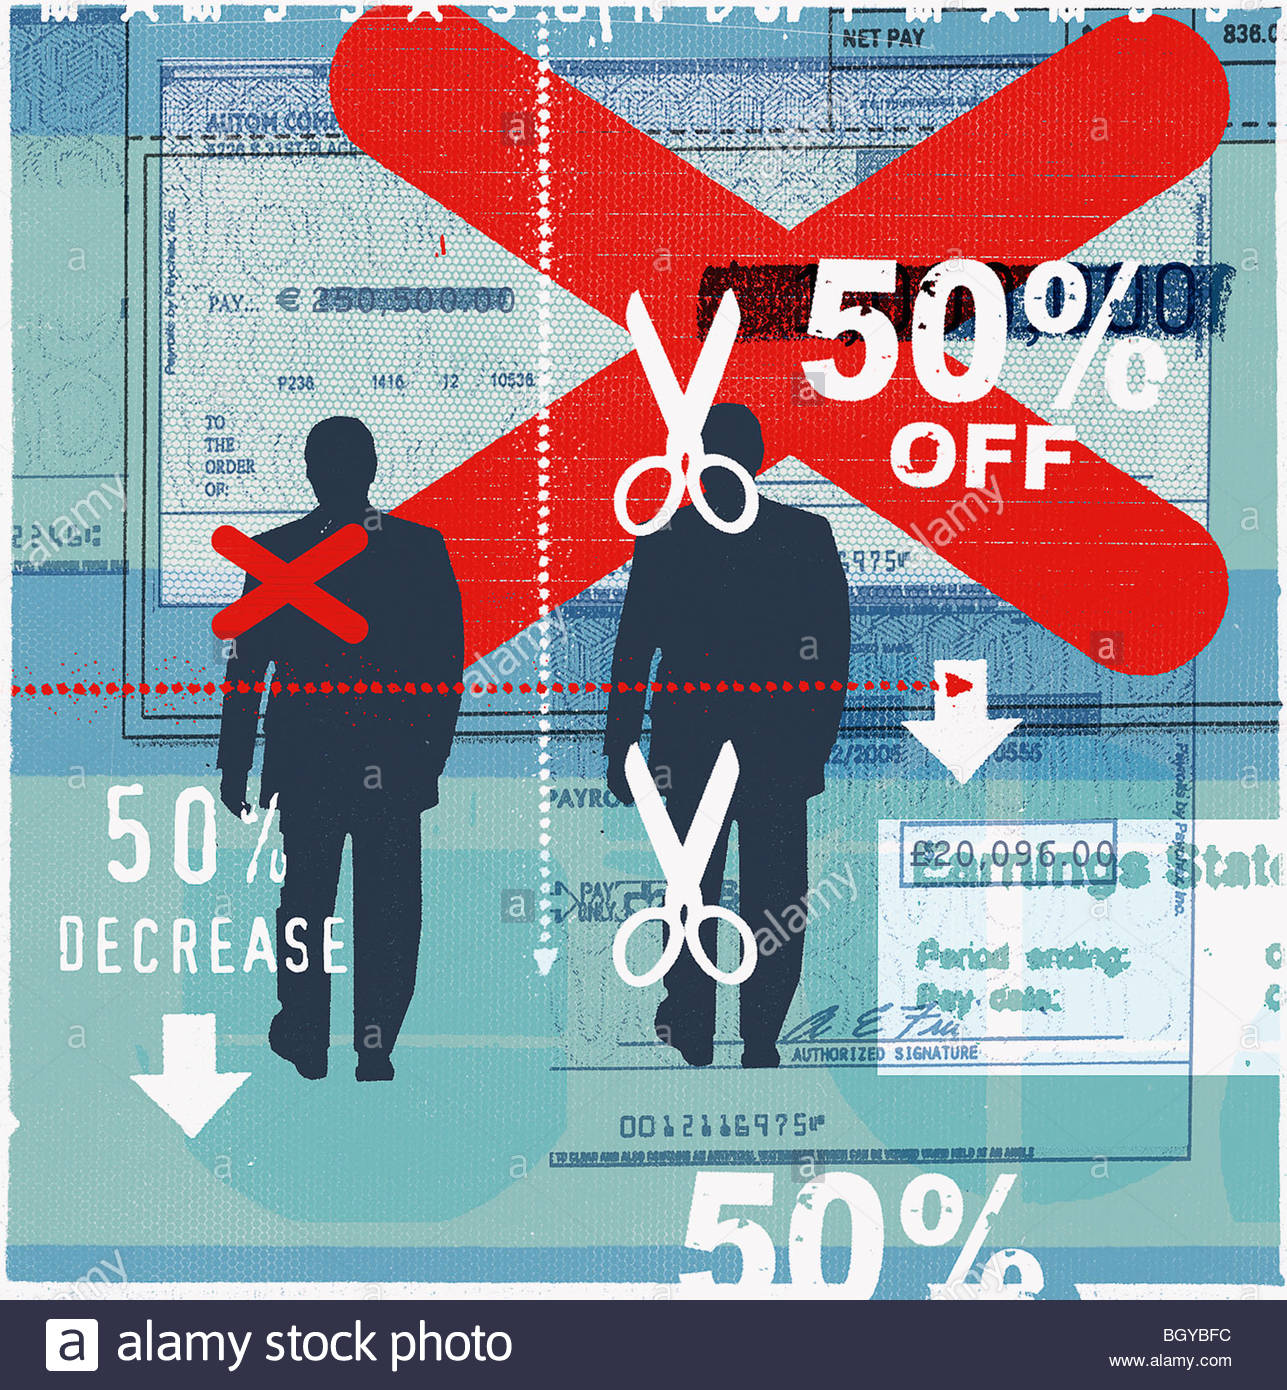 Businessmen with 50% off sign - Stock Image